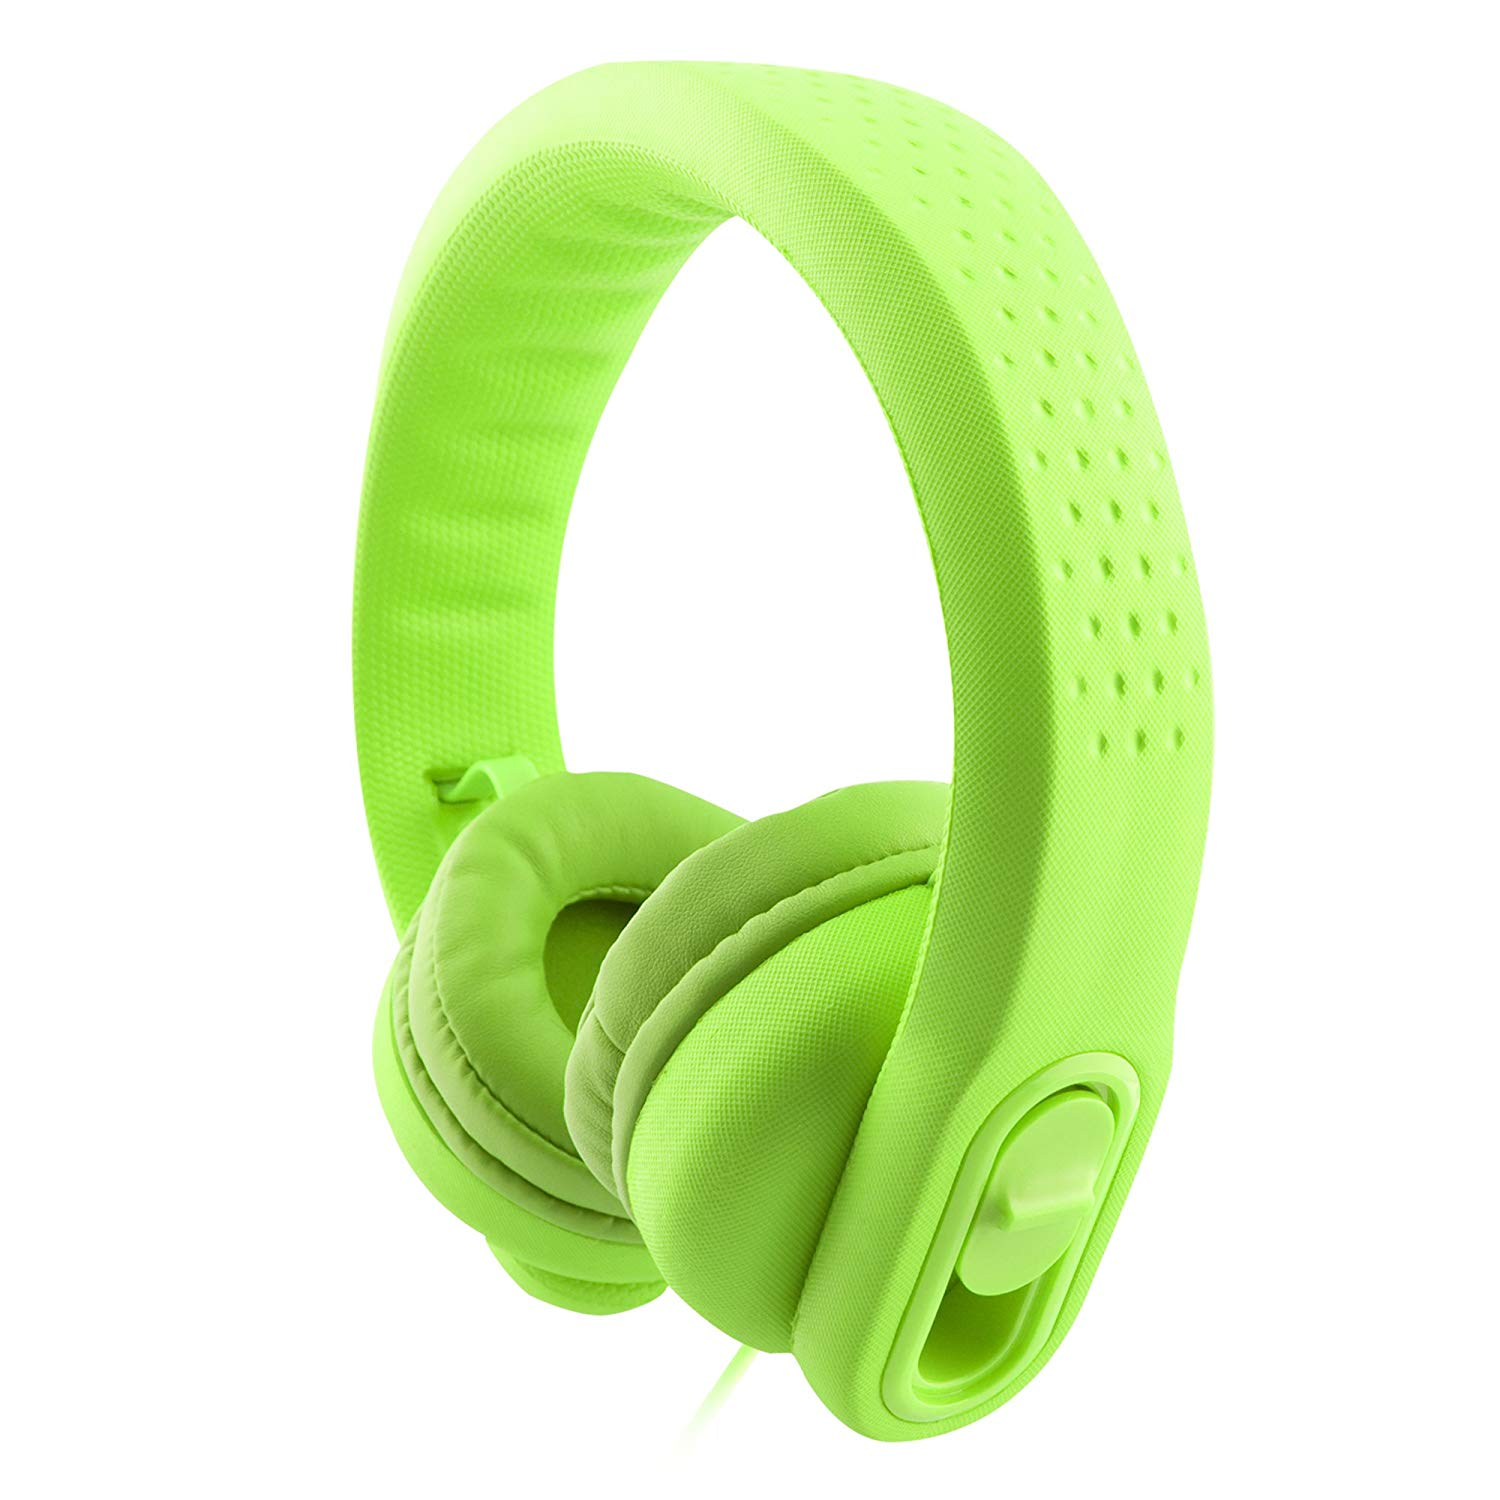 K900 Wired Over Ear Kids Headphones Toddler Headphones with Microphone and Sharing Port, 85dB Volume Limiting, Girls Headphones for Kids,Safe Soft Durable,Boys Child Children Headphones Kids (Green)